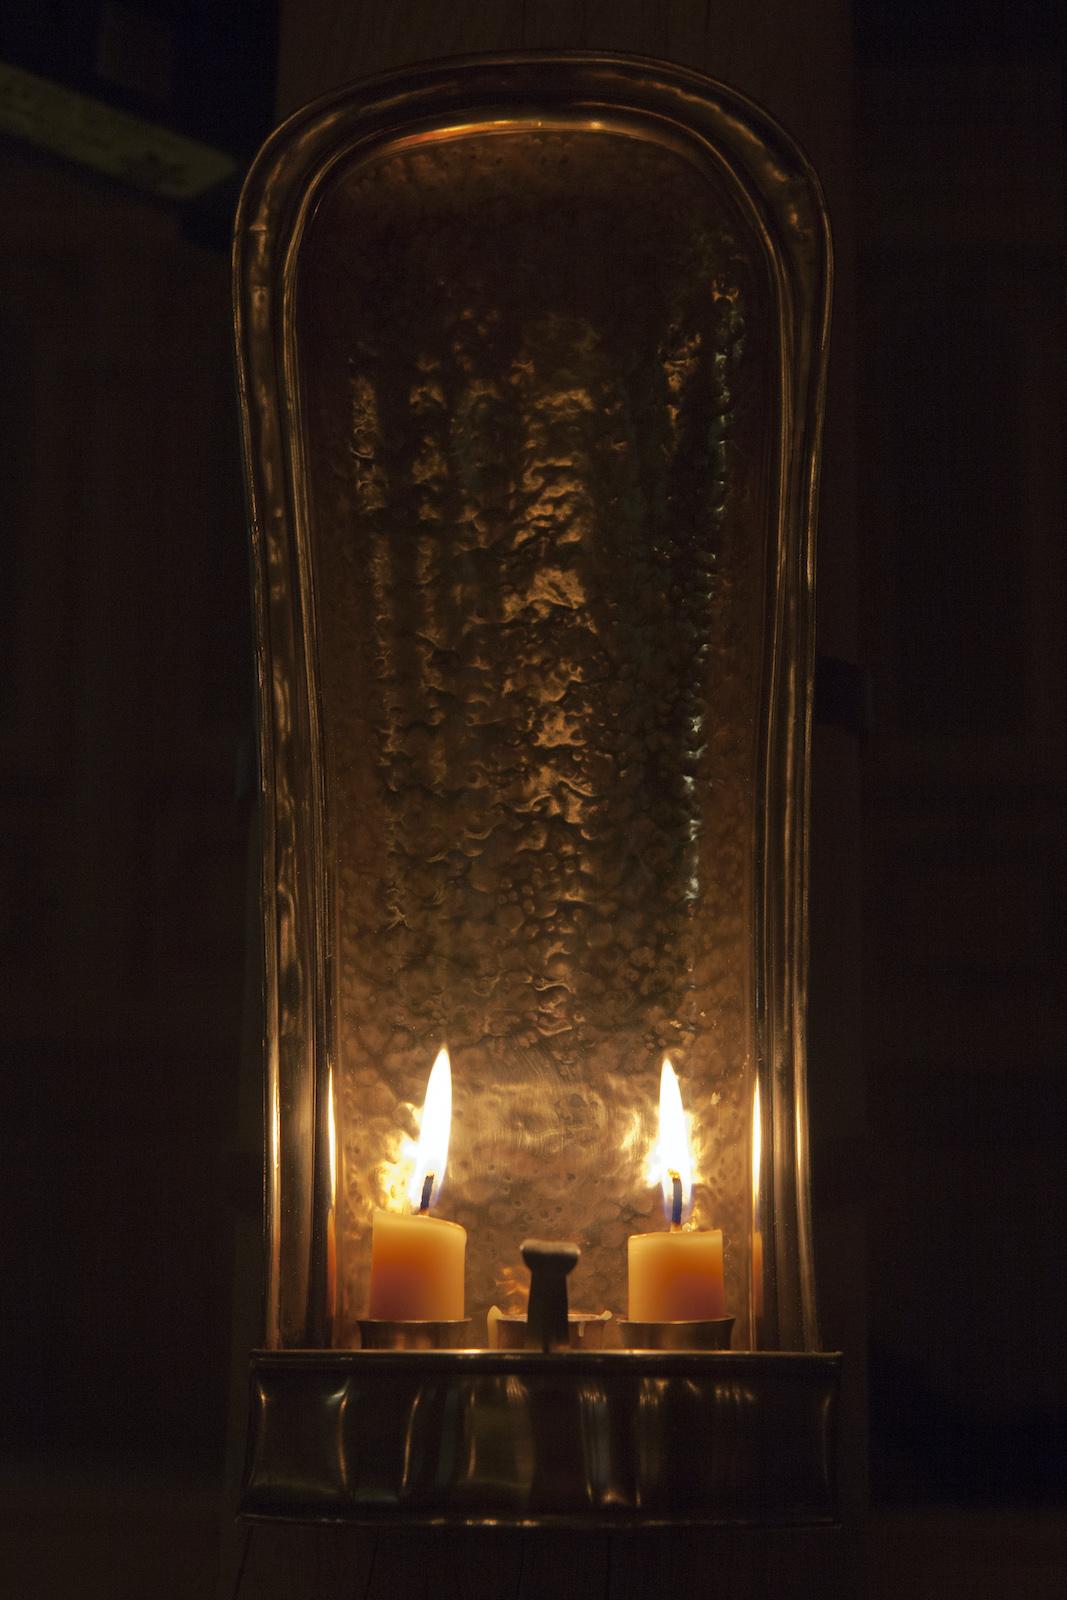 Two cream candles are lit in the darkness